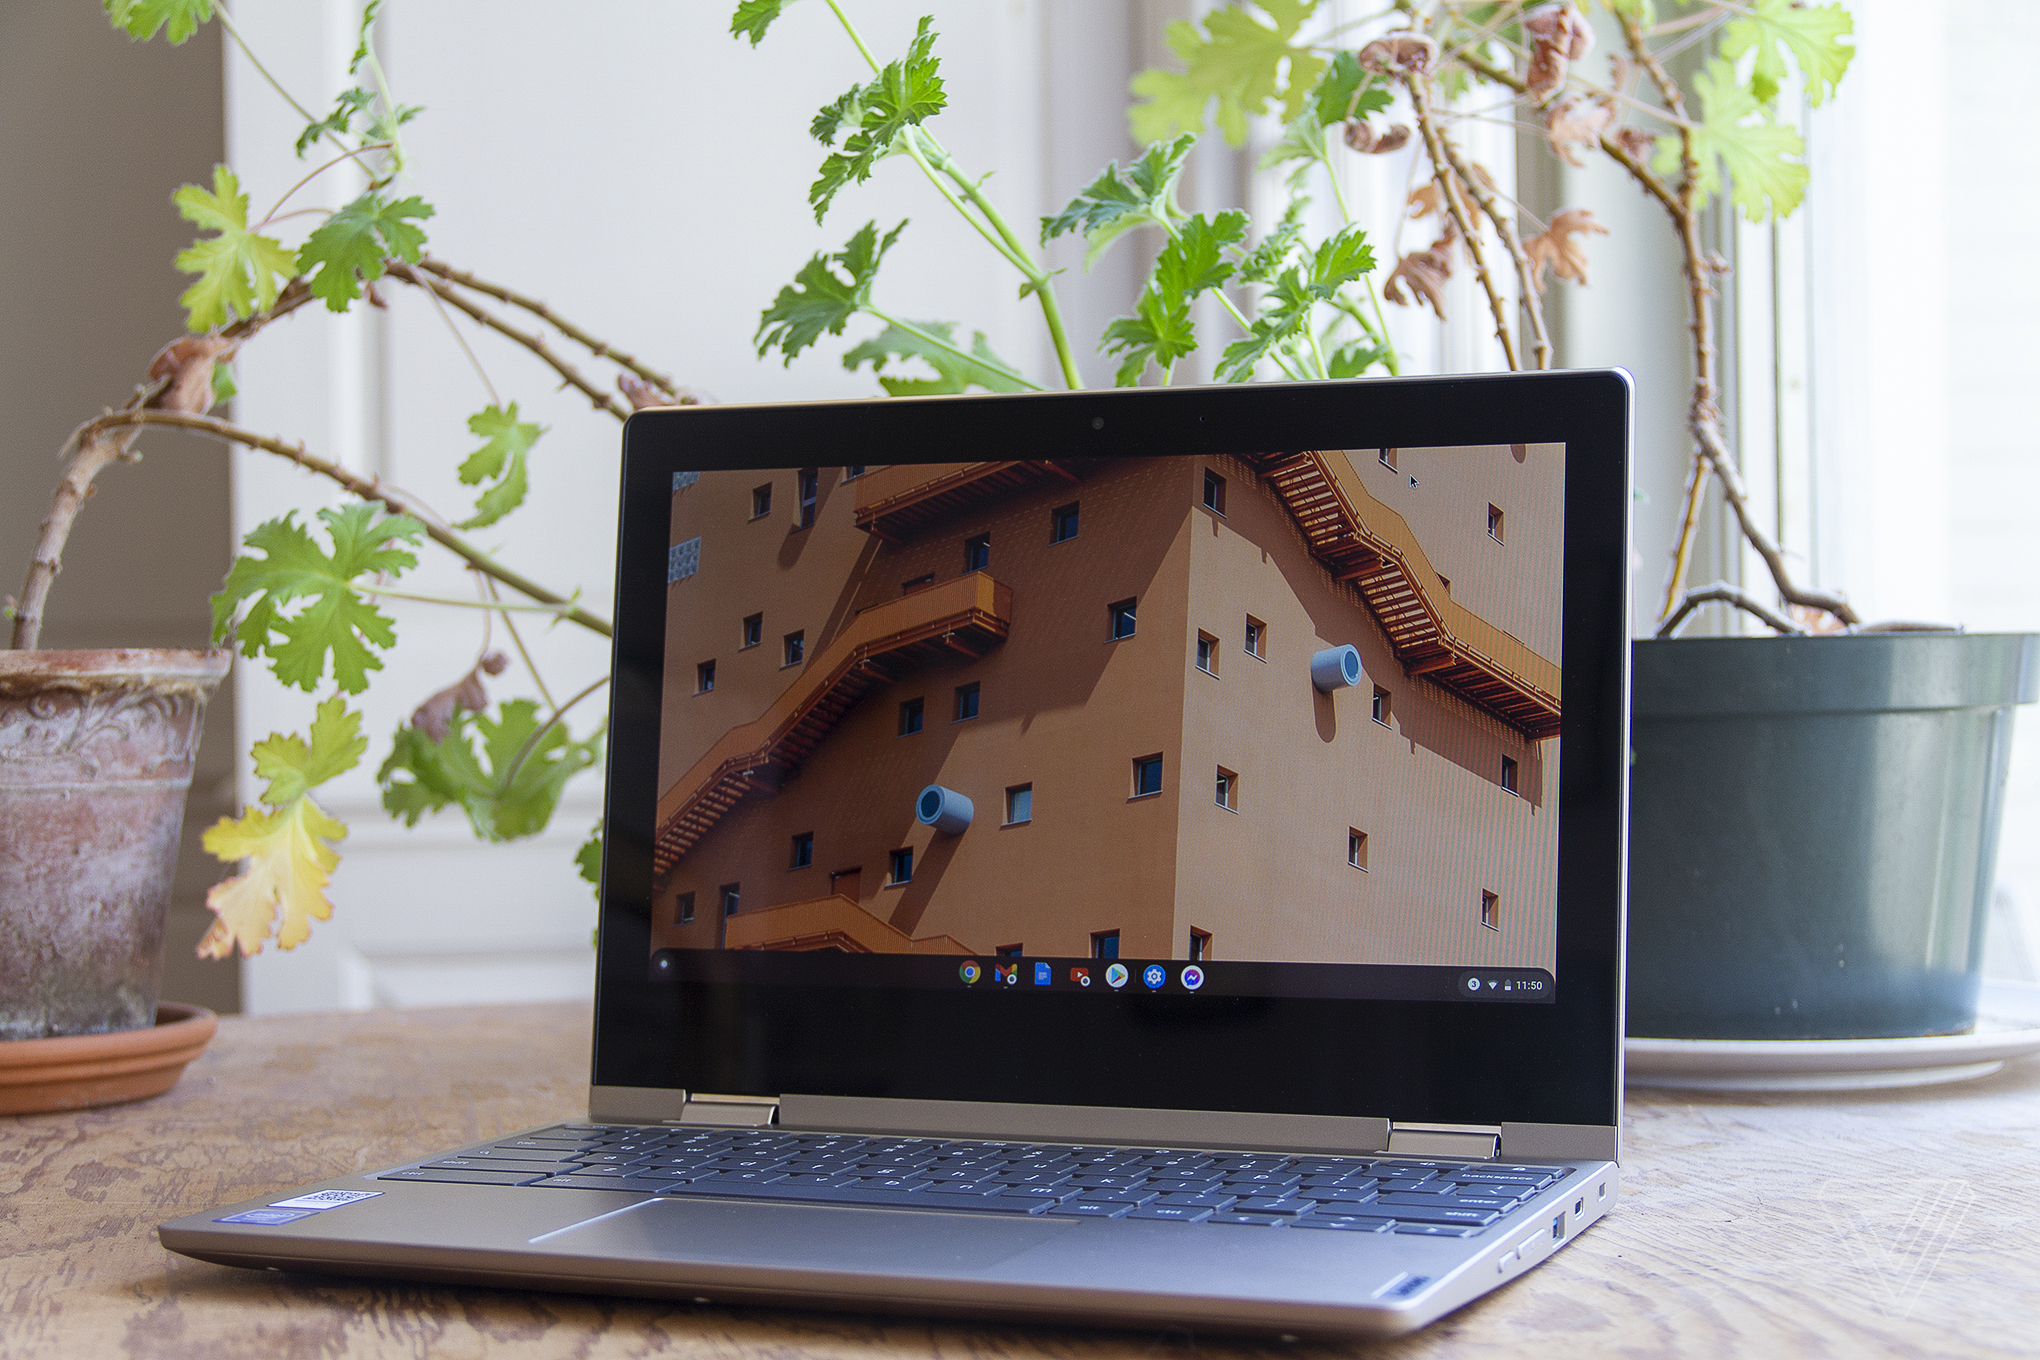 The Lenovo Ideapad Flex 3 Chromebook sits open on a table in front of a window and two houseplants. The screen displays the upper windows of a large building.